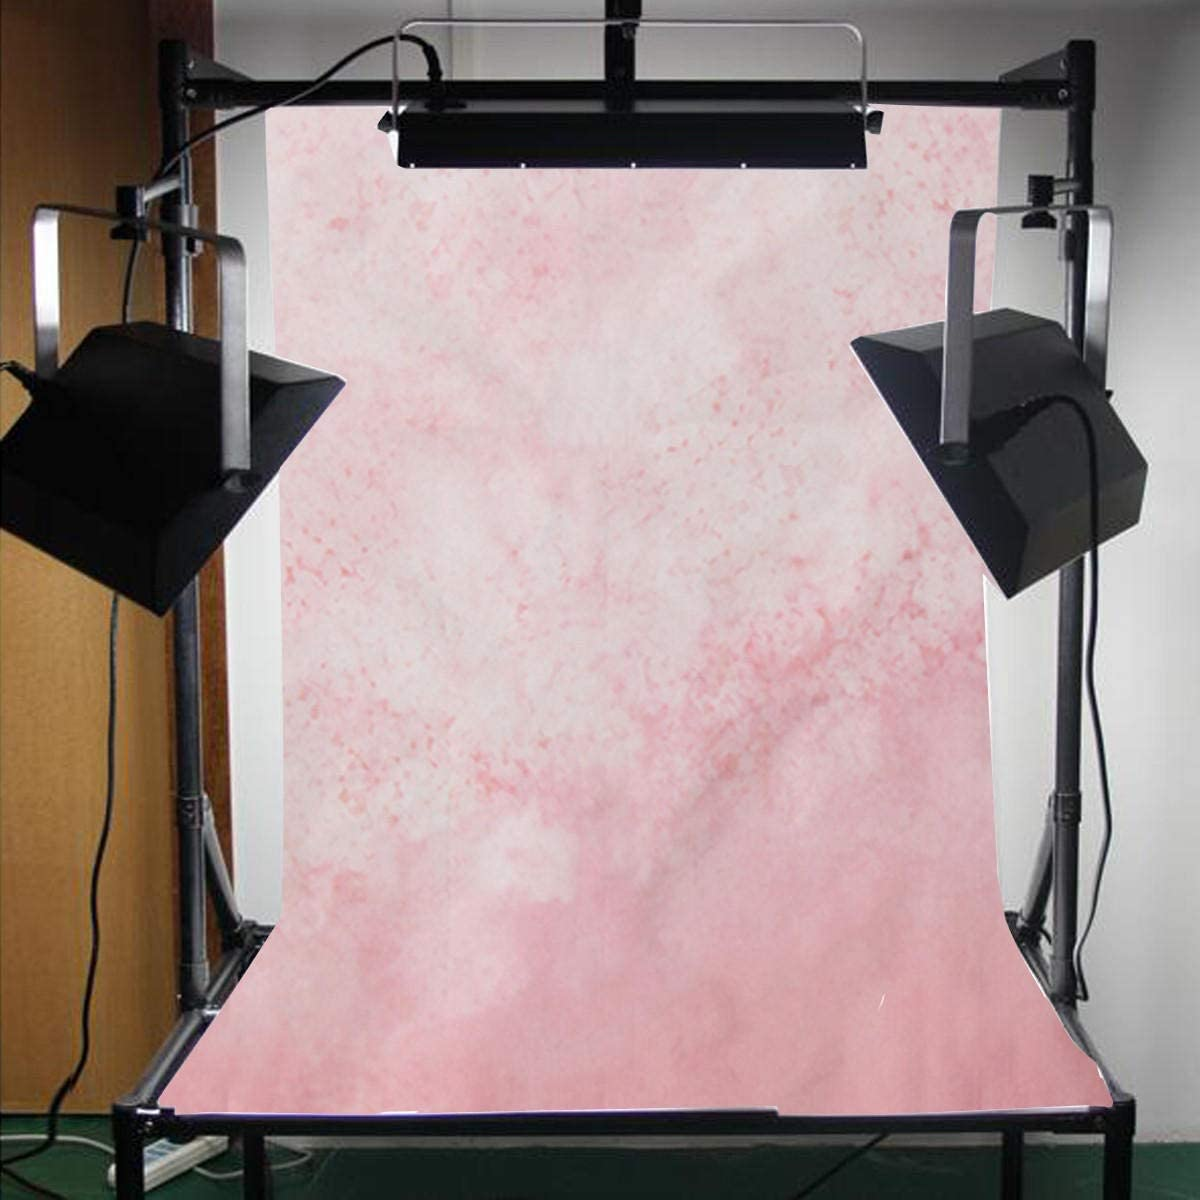 Teerwere Backdrop Stand Vinyl Background Bargain Tucson Mall Phot Cloth Baby Flowers